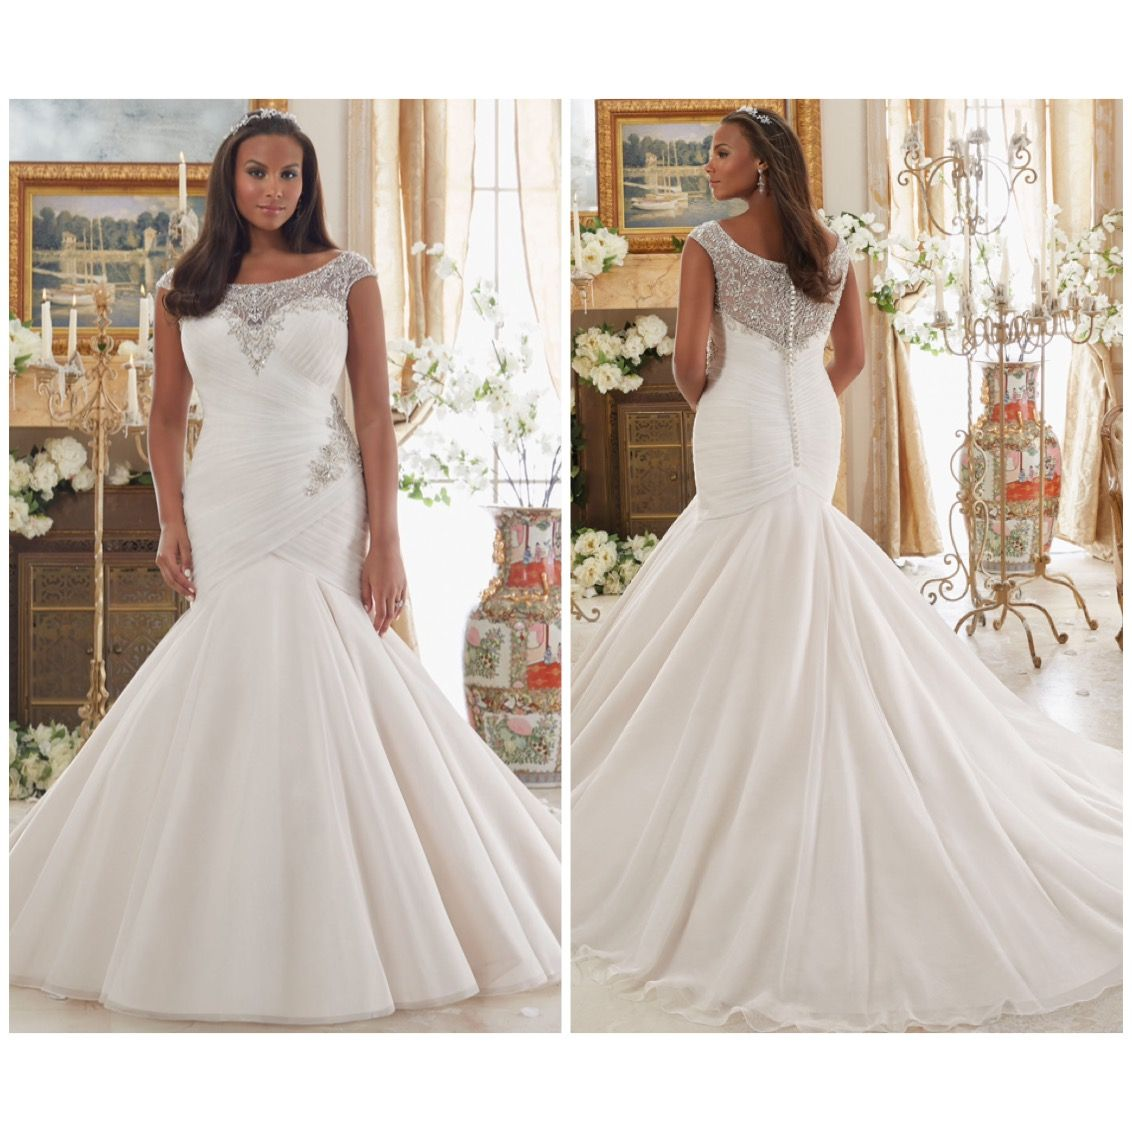 Plus size wedding dress designers  Mori Lee  Size W in store  Plus Size Wedding Gowns All